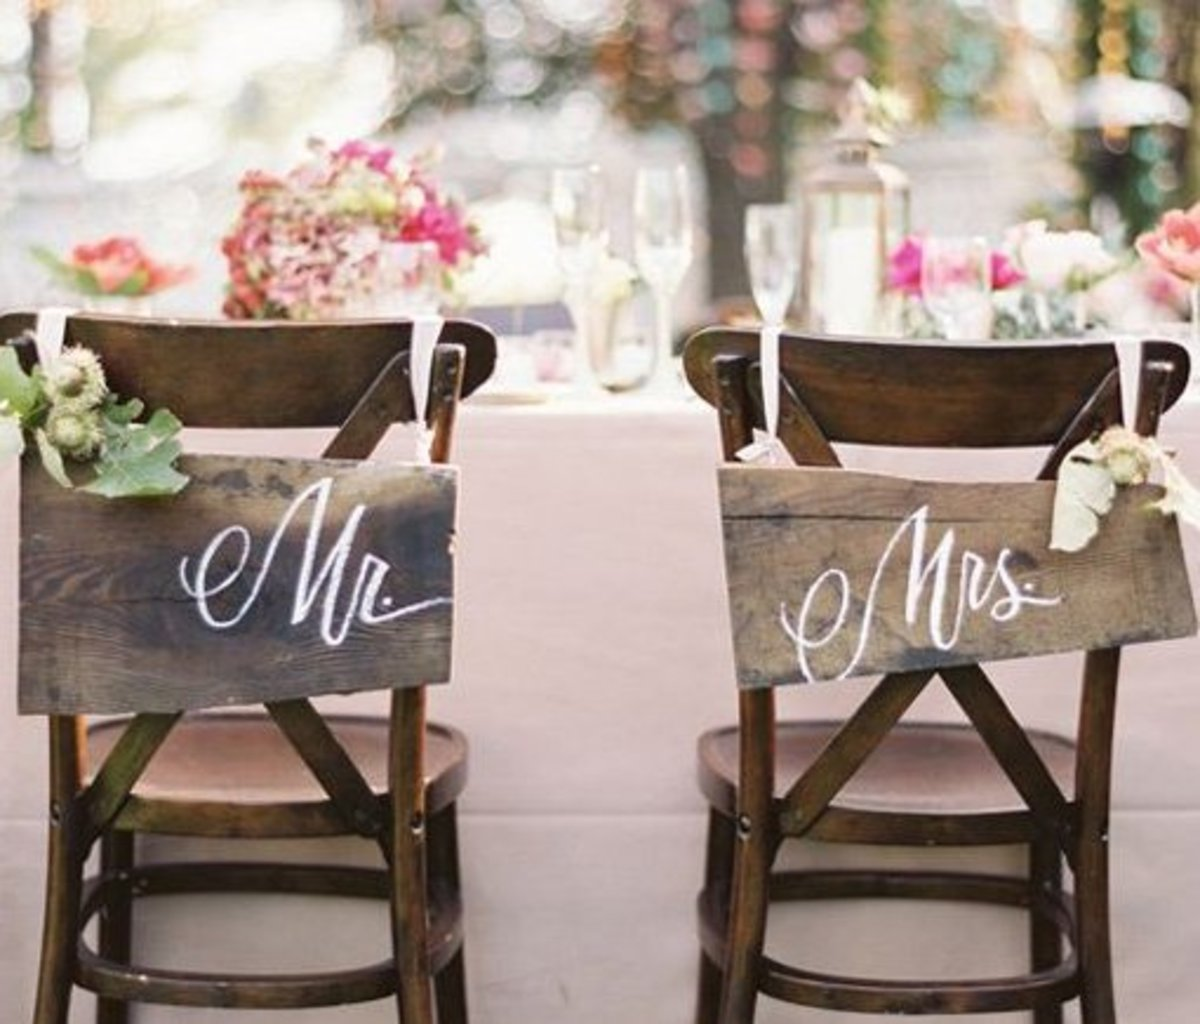 DIY Wedding Table Decoration Ideas | Bride n Groom Wedding Chairs